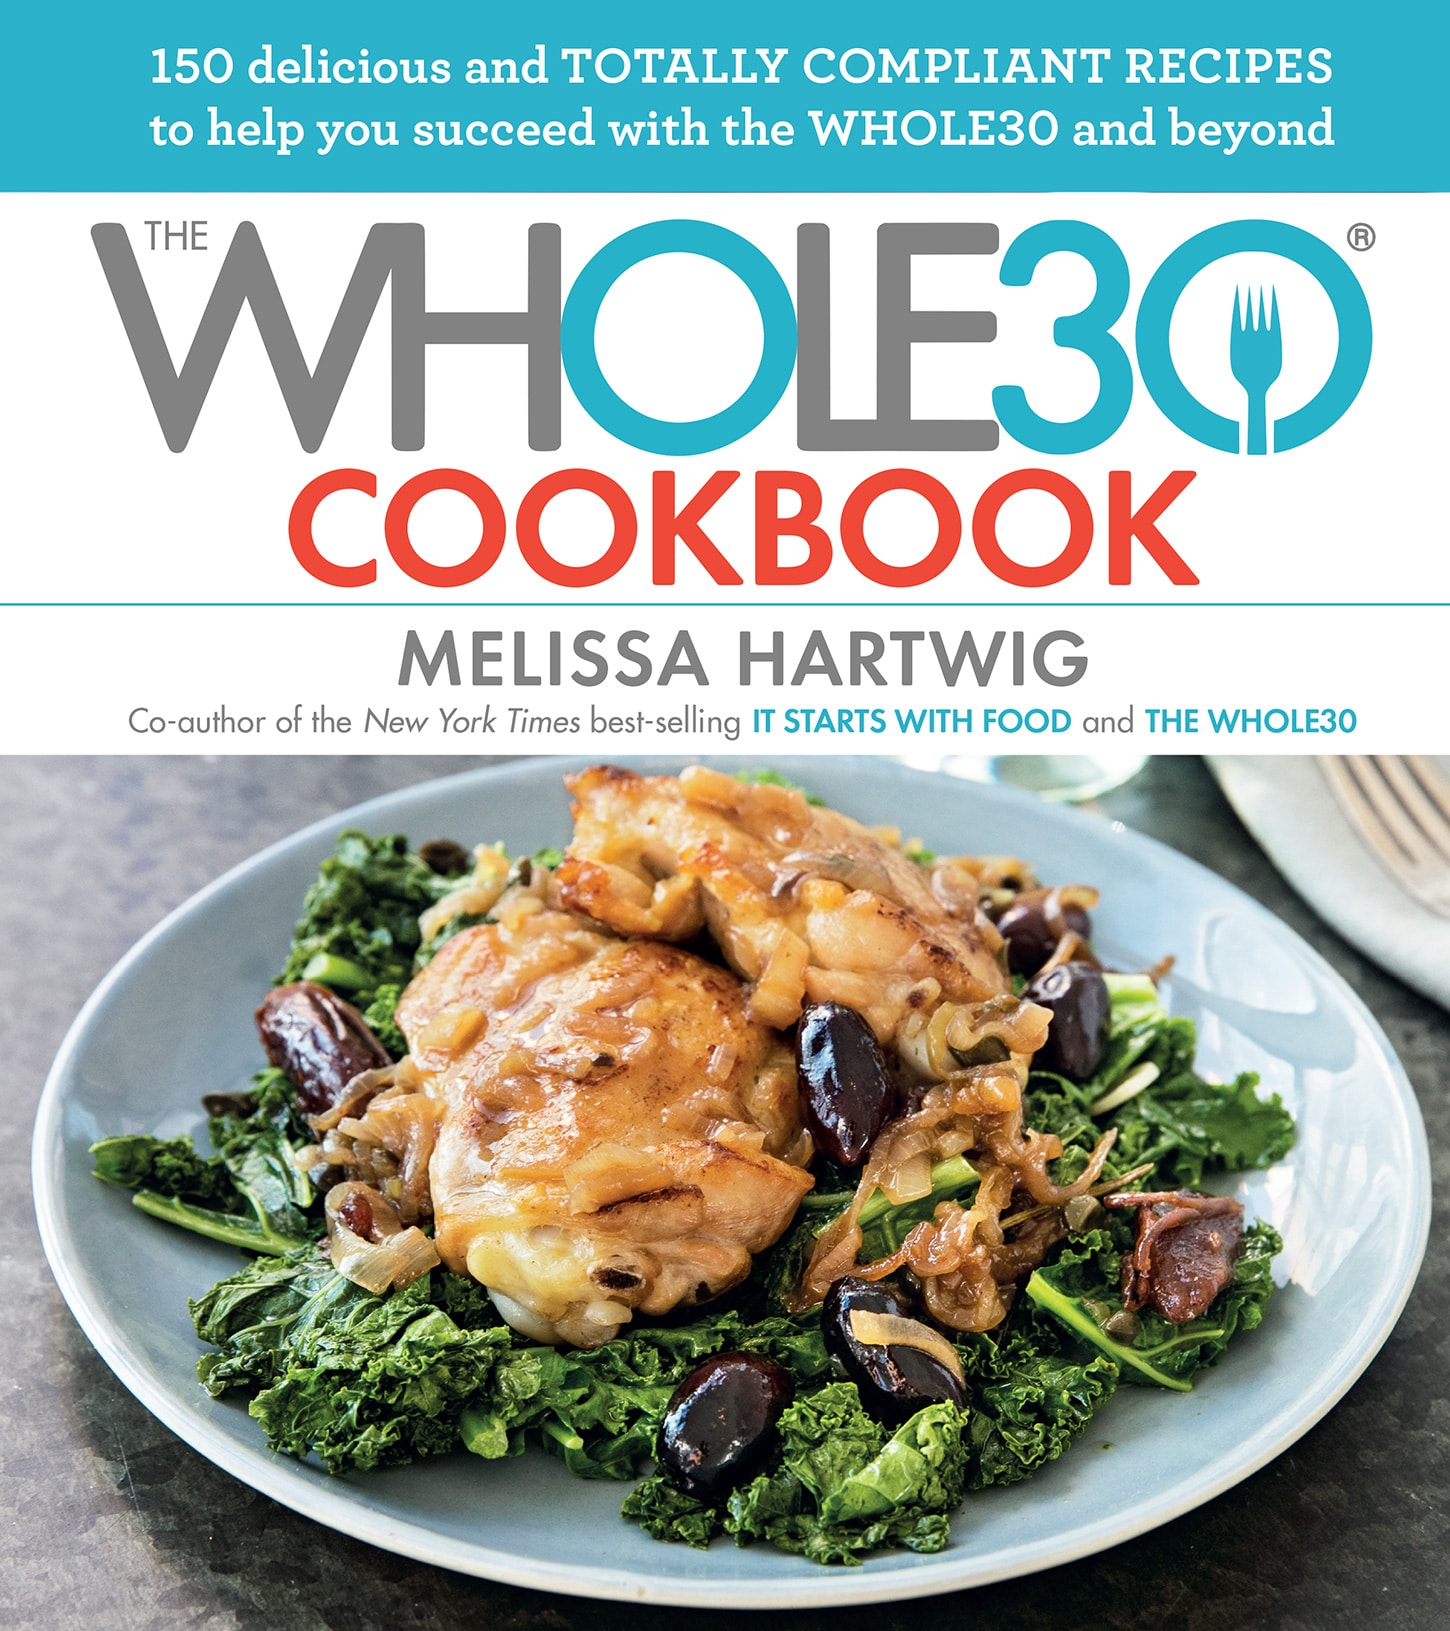 The Whole30 Cookbook cover featuring smothered chicken with onions and olives on a bed of kale.